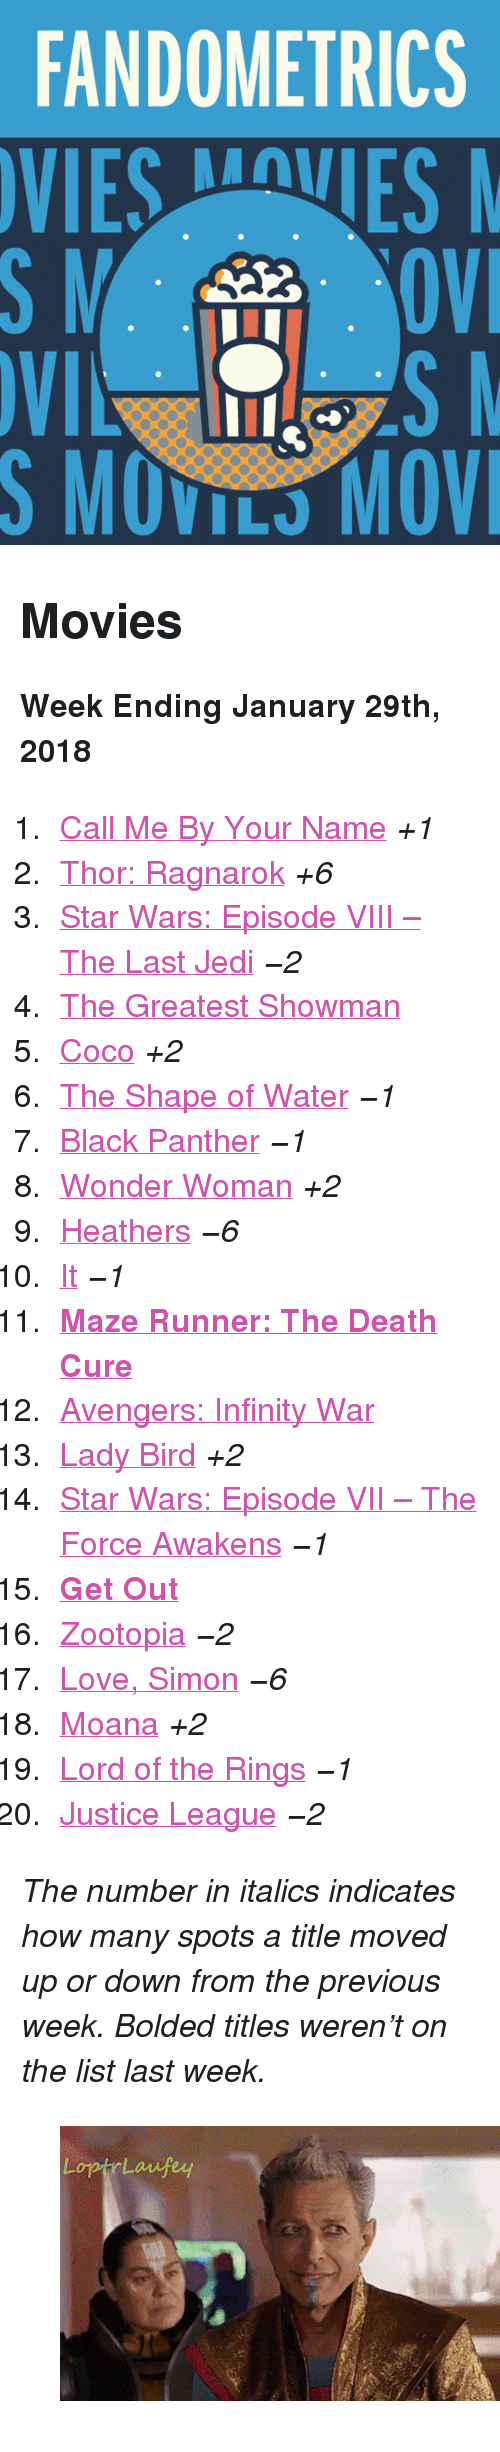 """maze: FANDOMETRICS  SMOVILS MOV <h2>Movies</h2><p><b>Week Ending January 29th, 2018</b></p><ol><li><a href=""""http://www.tumblr.com/search/call%20me%20by%20your%20name"""">Call Me By Your Name</a><i>+1</i></li>  <li><a href=""""http://www.tumblr.com/search/thor%20ragnarok"""">Thor: Ragnarok</a><i>+6</i></li>  <li><a href=""""http://www.tumblr.com/search/the%20last%20jedi"""">Star Wars: Episode VIII – The Last Jedi</a><i><i>−2</i></i></li>  <li><a href=""""http://www.tumblr.com/search/the%20greatest%20showman"""">The Greatest Showman</a></li>  <li><a href=""""http://www.tumblr.com/search/coco"""">Coco</a><i>+2</i></li>  <li><a href=""""http://www.tumblr.com/search/the%20shape%20of%20water"""">The Shape of Water</a><i><i>−1</i></i></li>  <li><a href=""""http://www.tumblr.com/search/black%20panther"""">Black Panther</a><i><i>−1</i></i></li>  <li><a href=""""http://www.tumblr.com/search/wonder%20woman"""">Wonder Woman</a><i>+2</i></li>  <li><a href=""""http://www.tumblr.com/search/heathers"""">Heathers</a><i><i>−6</i></i></li>  <li><a href=""""http://www.tumblr.com/search/it%202017"""">It</a><i><i>−1</i></i></li>  <li><a href=""""http://www.tumblr.com/search/the%20maze%20runner""""><b>Maze Runner: The Death Cure</b></a></li>  <li><a href=""""http://www.tumblr.com/search/infinity%20war"""">Avengers: Infinity War</a></li>  <li><a href=""""http://www.tumblr.com/search/lady%20bird"""">Lady Bird</a><i>+2</i></li>  <li><a href=""""http://www.tumblr.com/search/the%20force%20awakens"""">Star Wars: Episode VII – The Force Awakens</a><i><i>−1</i></i></li>  <li><a href=""""http://www.tumblr.com/search/get%20out""""><b>Get Out</b></a></li>  <li><a href=""""http://www.tumblr.com/search/zootopia"""">Zootopia</a><i><i>−2</i></i></li>  <li><a href=""""http://www.tumblr.com/search/love%20simon"""">Love, Simon</a><i><i>−6</i></i></li>  <li><a href=""""http://www.tumblr.com/search/moana"""">Moana</a><i>+2</i></li>  <li><a href=""""http://www.tumblr.com/search/lotr"""">Lord of the Rings</a><i><i>−1</i></i></li>  <li><a href=""""http://www.tumblr.com/search/justice%20league"""">Justice League</a><i><i>−2</i"""